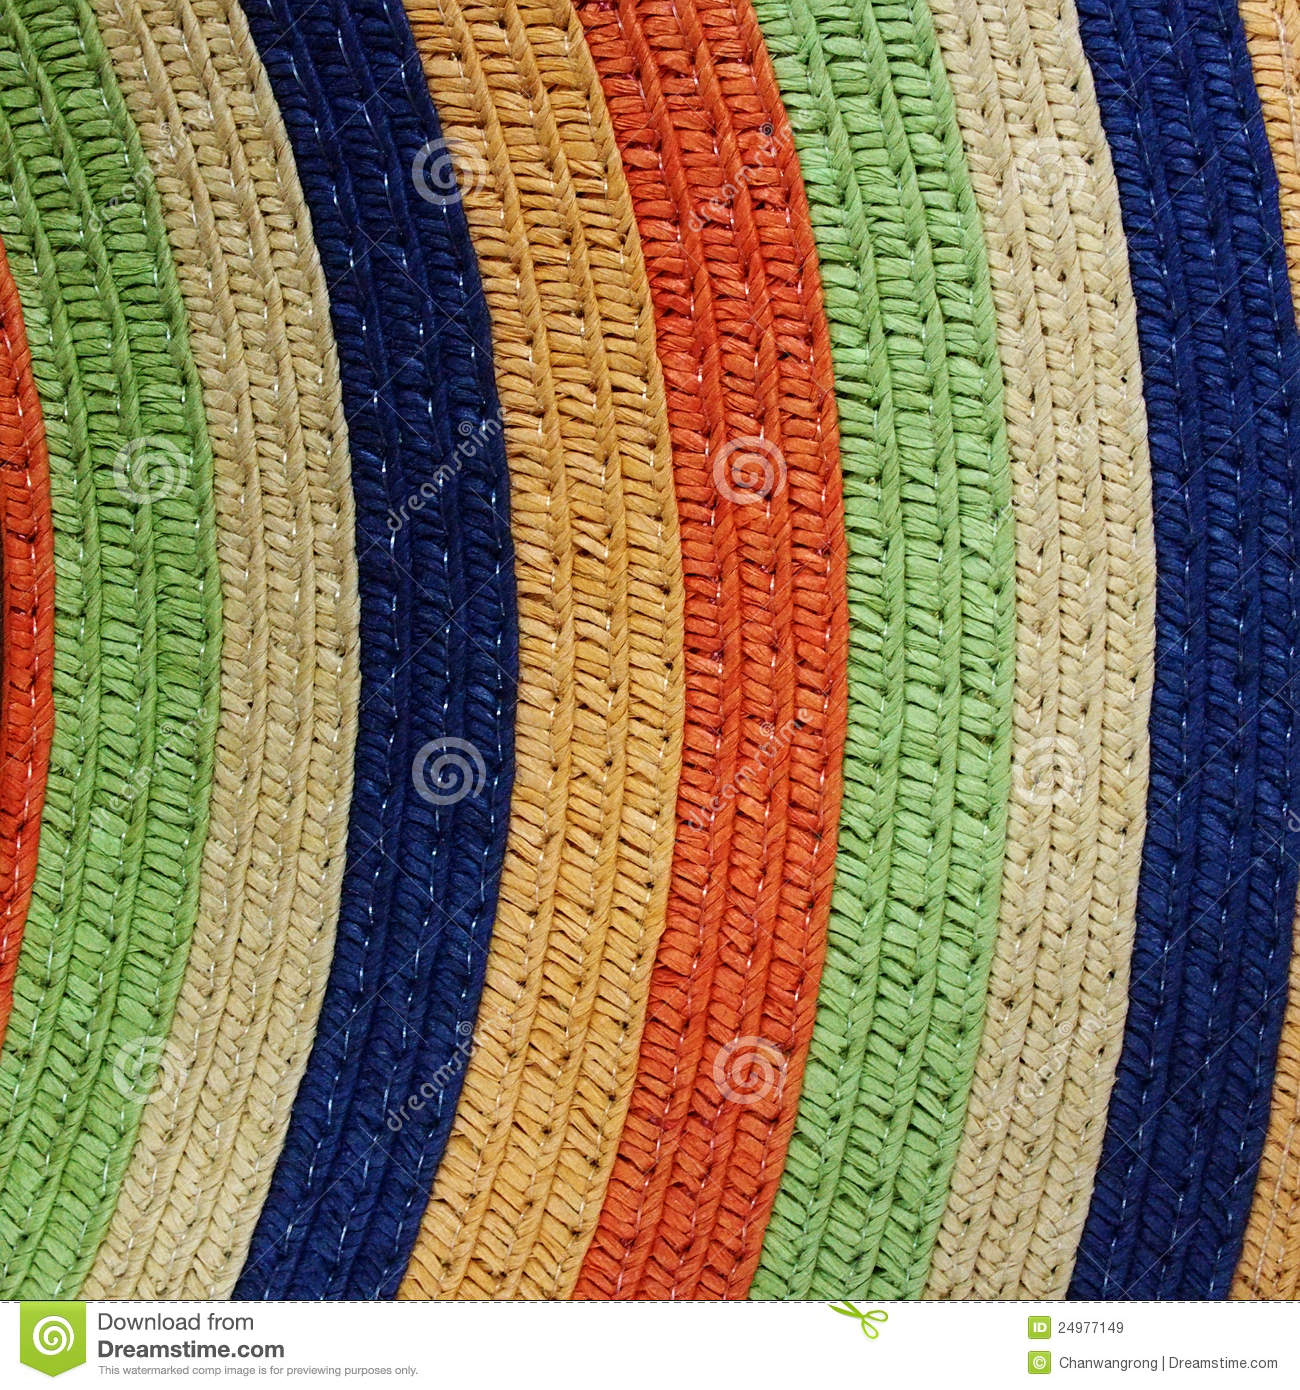 Colourful Knitting Patterns : Colorful Knitting Pattern Royalty Free Stock Images - Image: 24977149